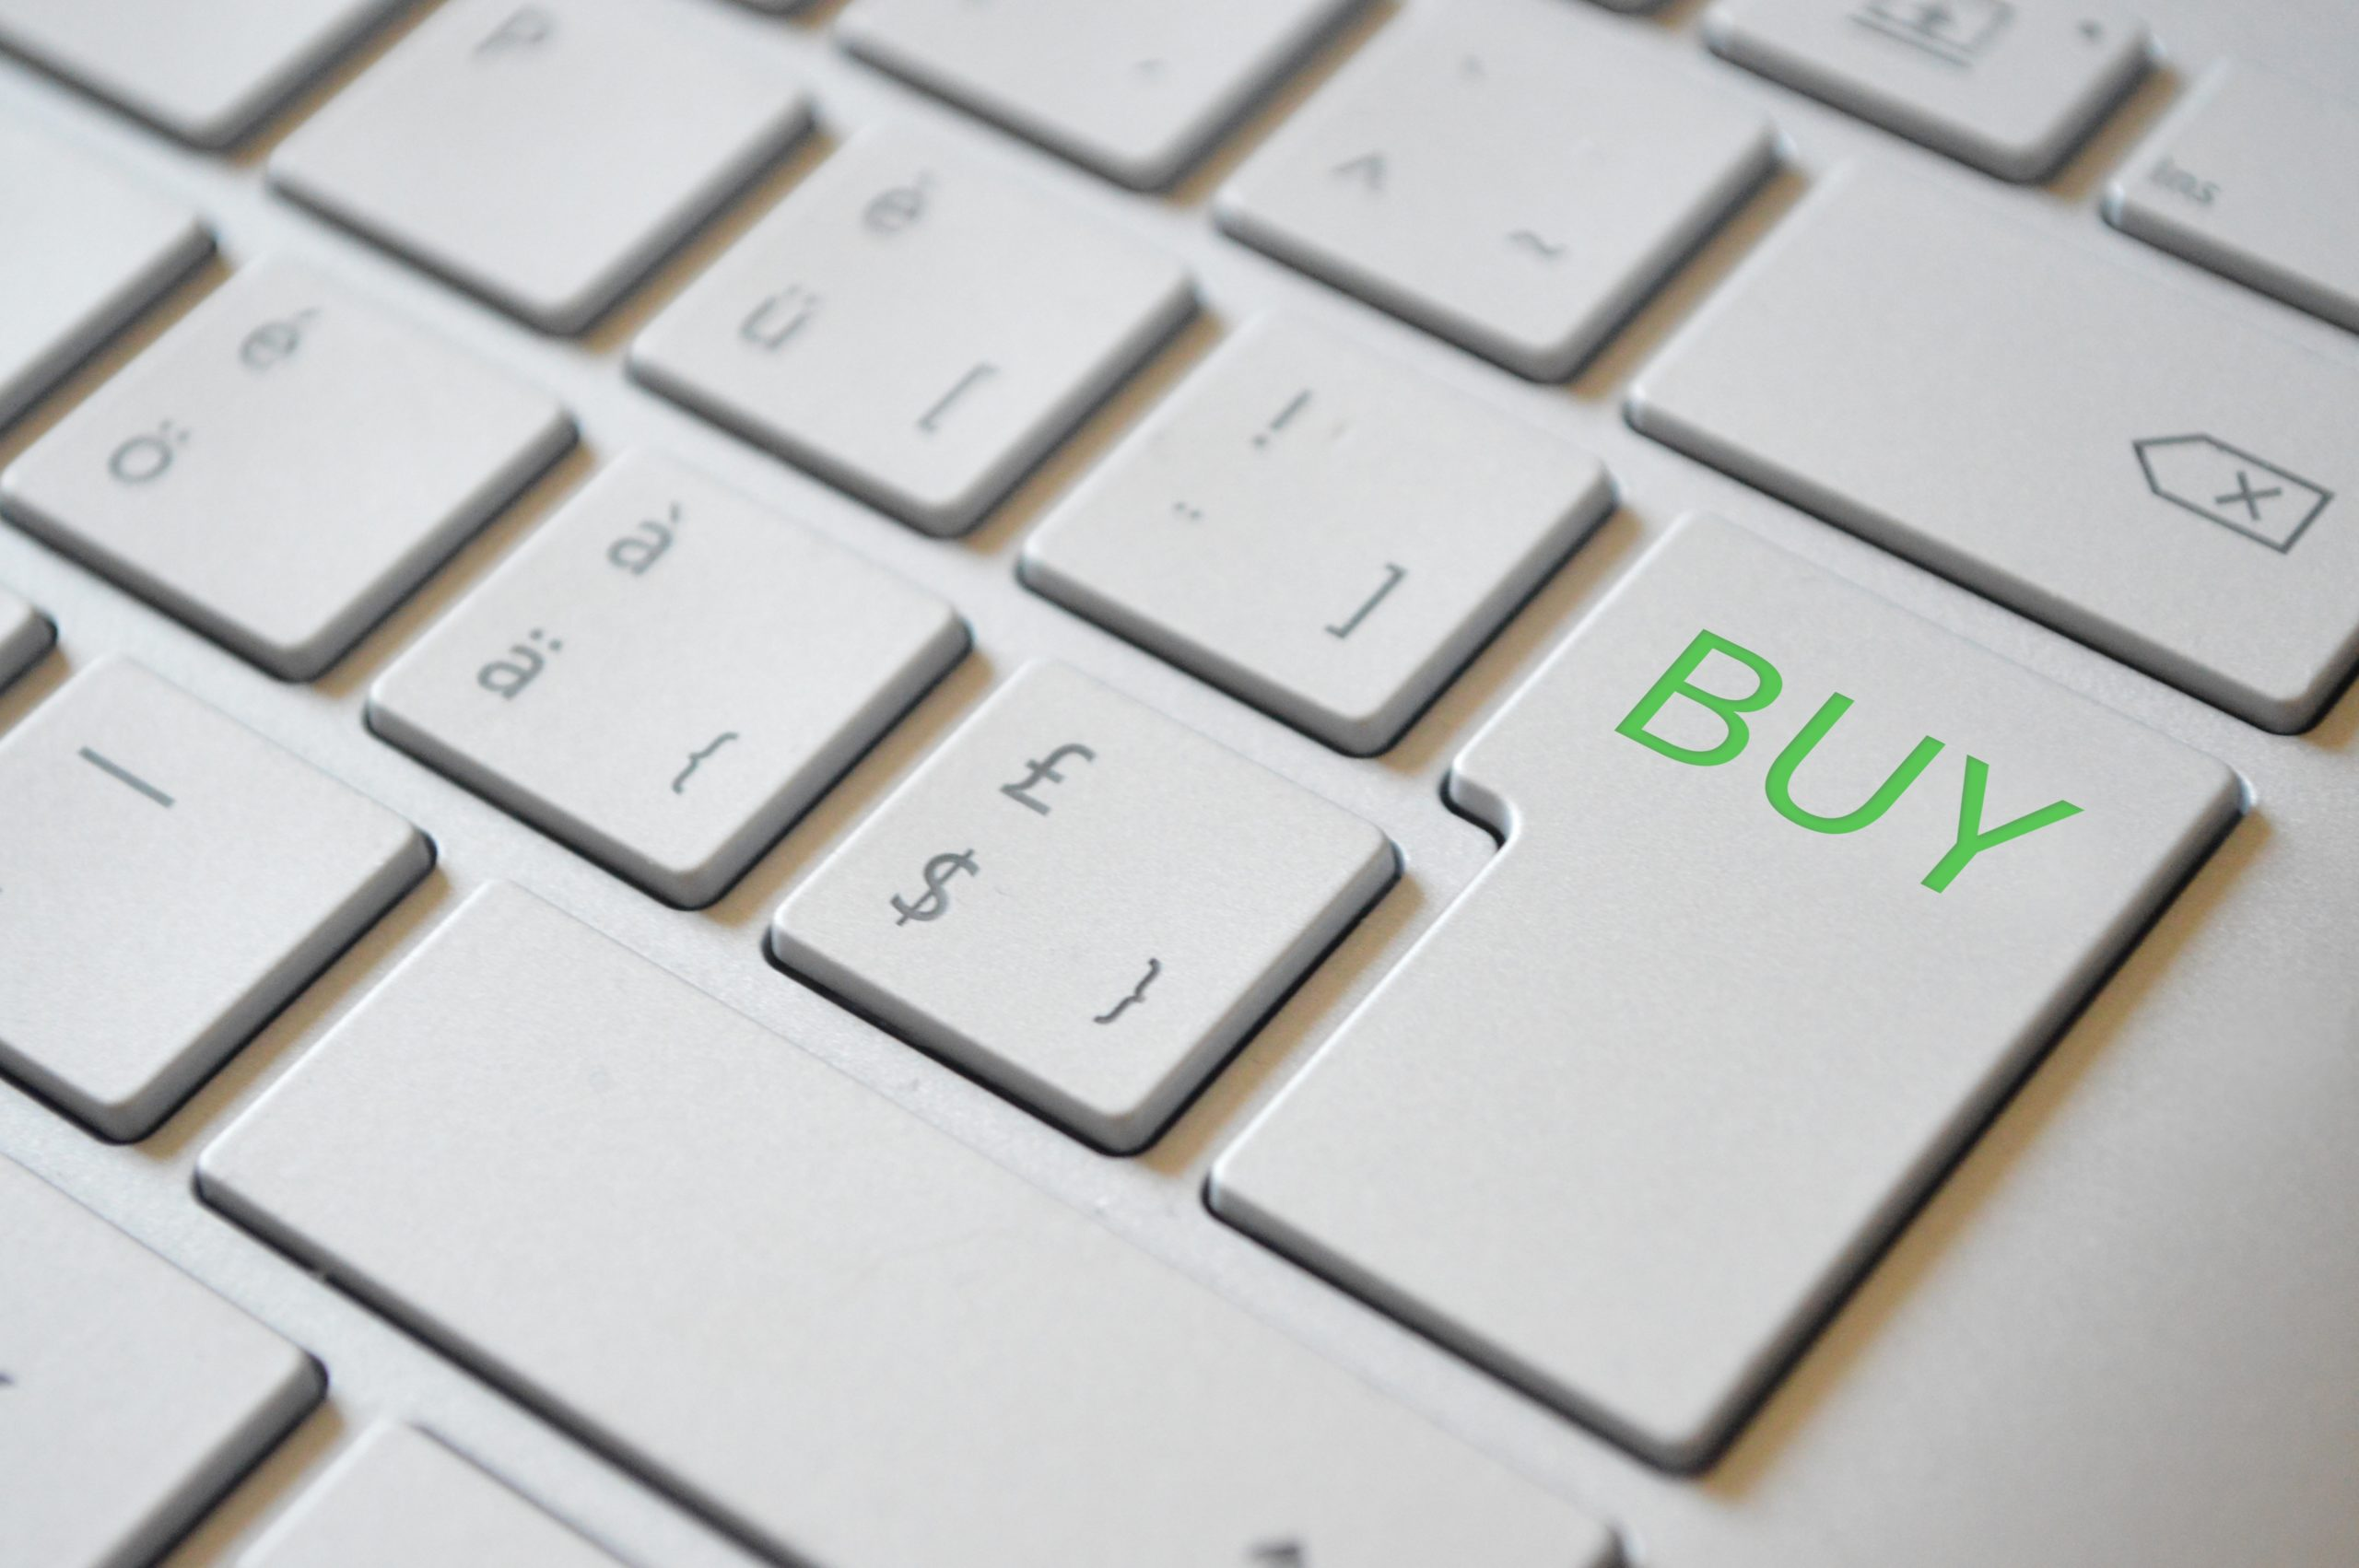 Buy button on computer keyboard